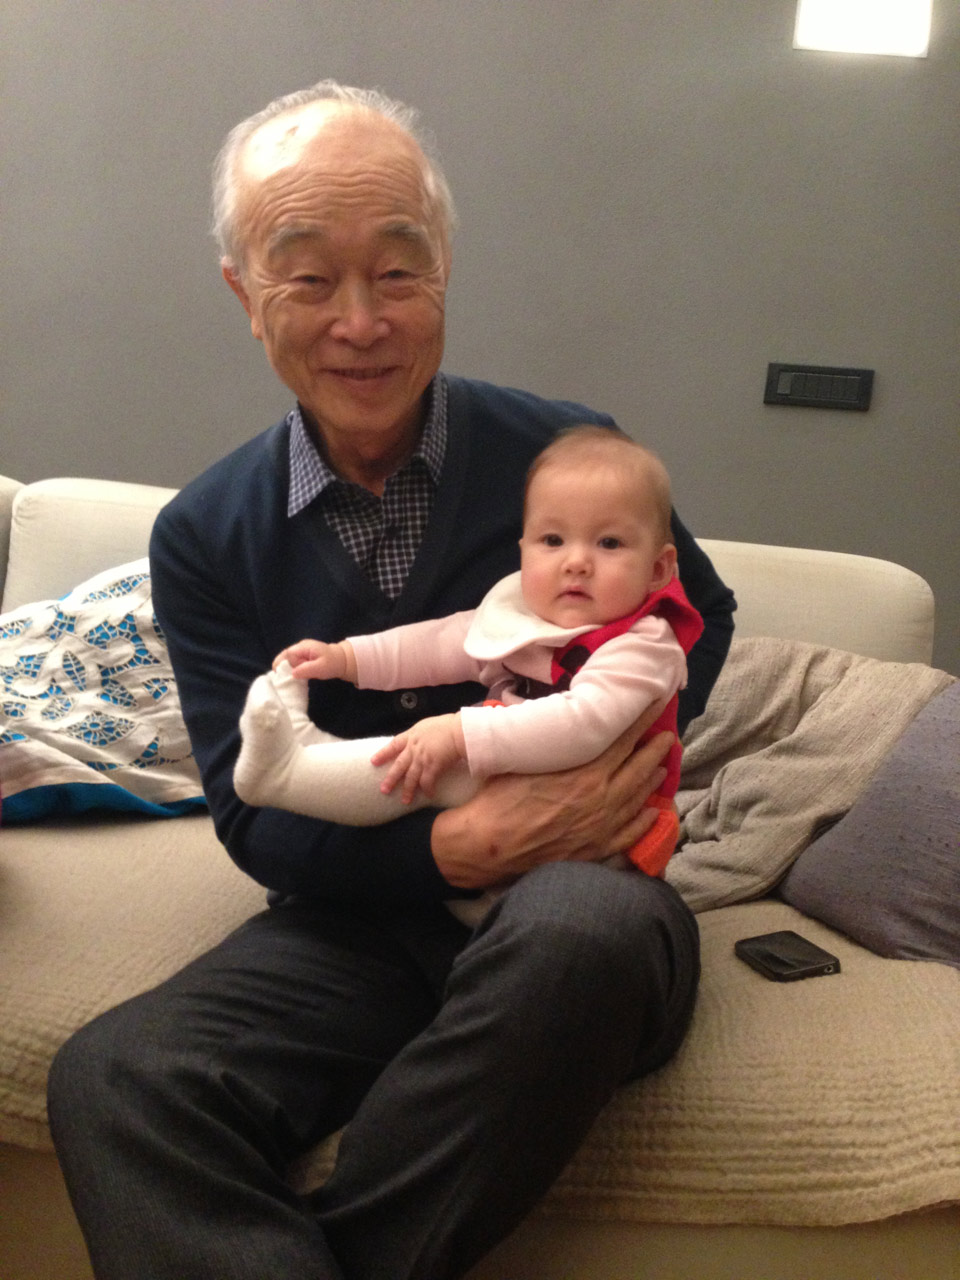 With his grandchild